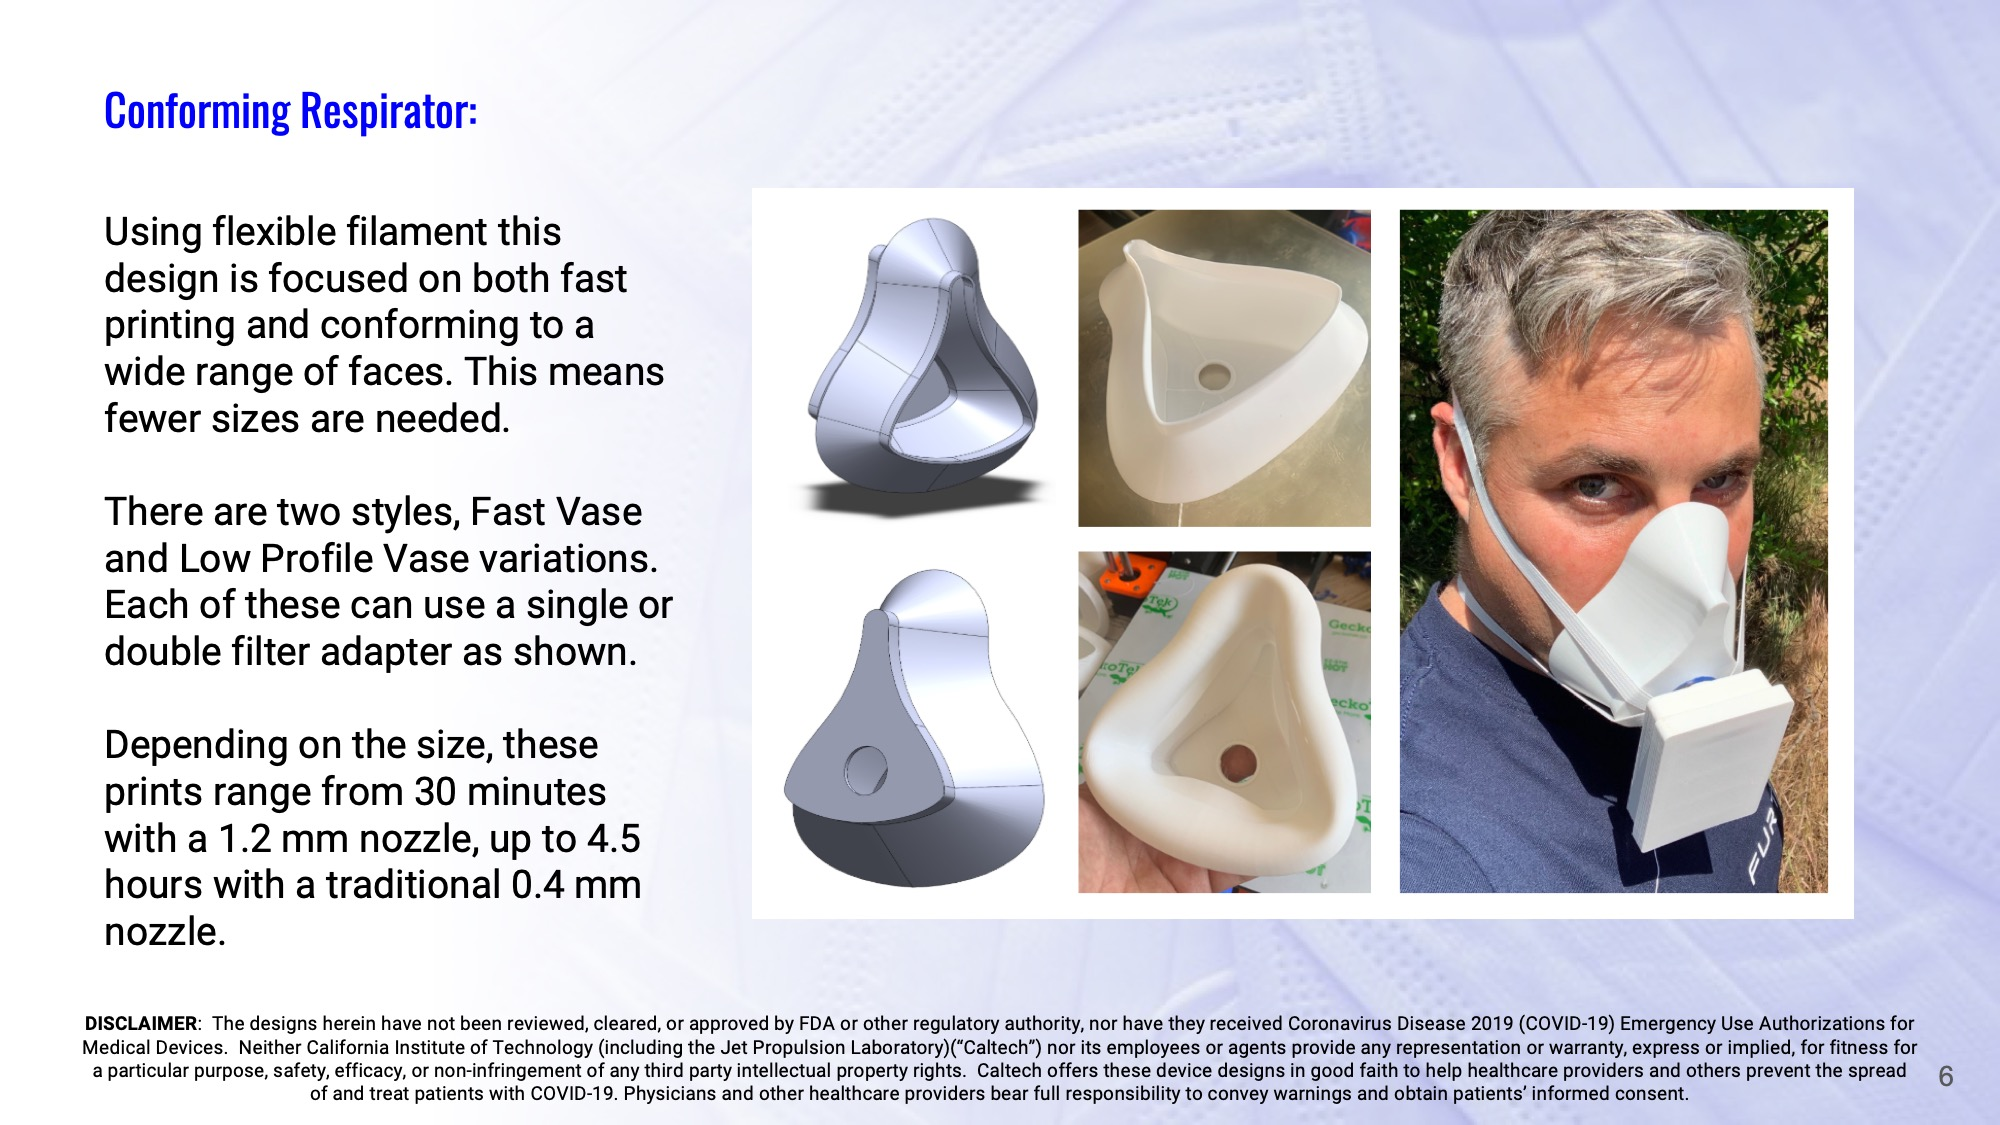 Slide 6: Conforming Respirator: Using flexible filament this design is focused on both fast printing and conforming to a wide range of faces. This means fewer sizes are needed. There are two styles, Fast Vase and Low Profile Vase variations. Each of these can use a single or double filter adapter as shown. Depending on the size, these prints range from 30 minutes with a 1.2 mm nozzle, up to 4.5 hours with a traditional 0.4 mm nozzle.